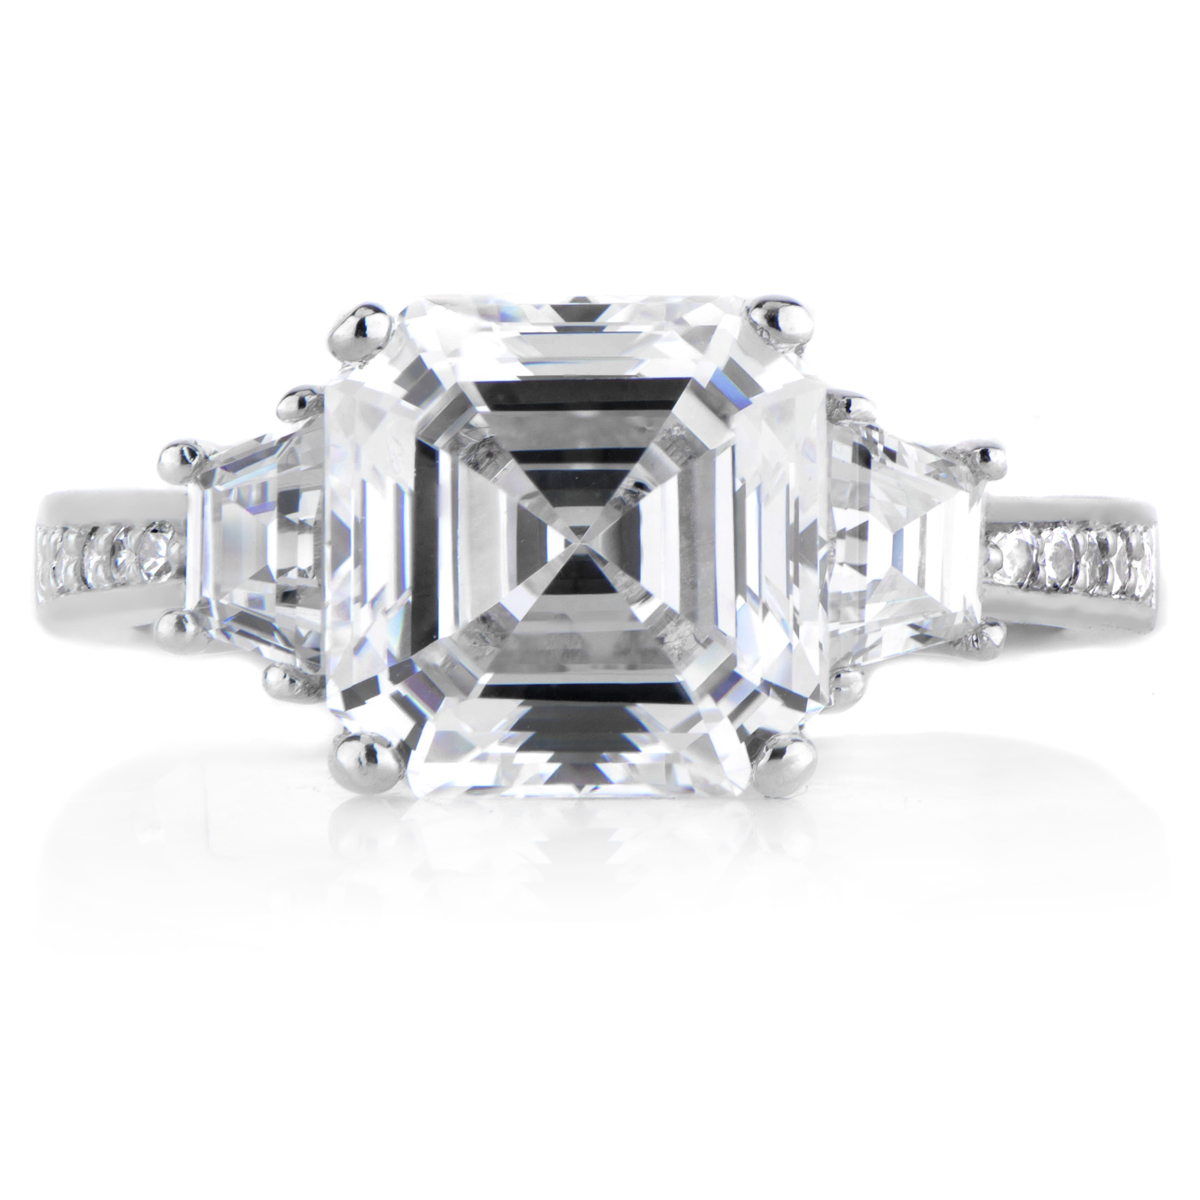 Asscher Cut Cz 3 Stone Ring Roll Off Image To Close Zoom Window